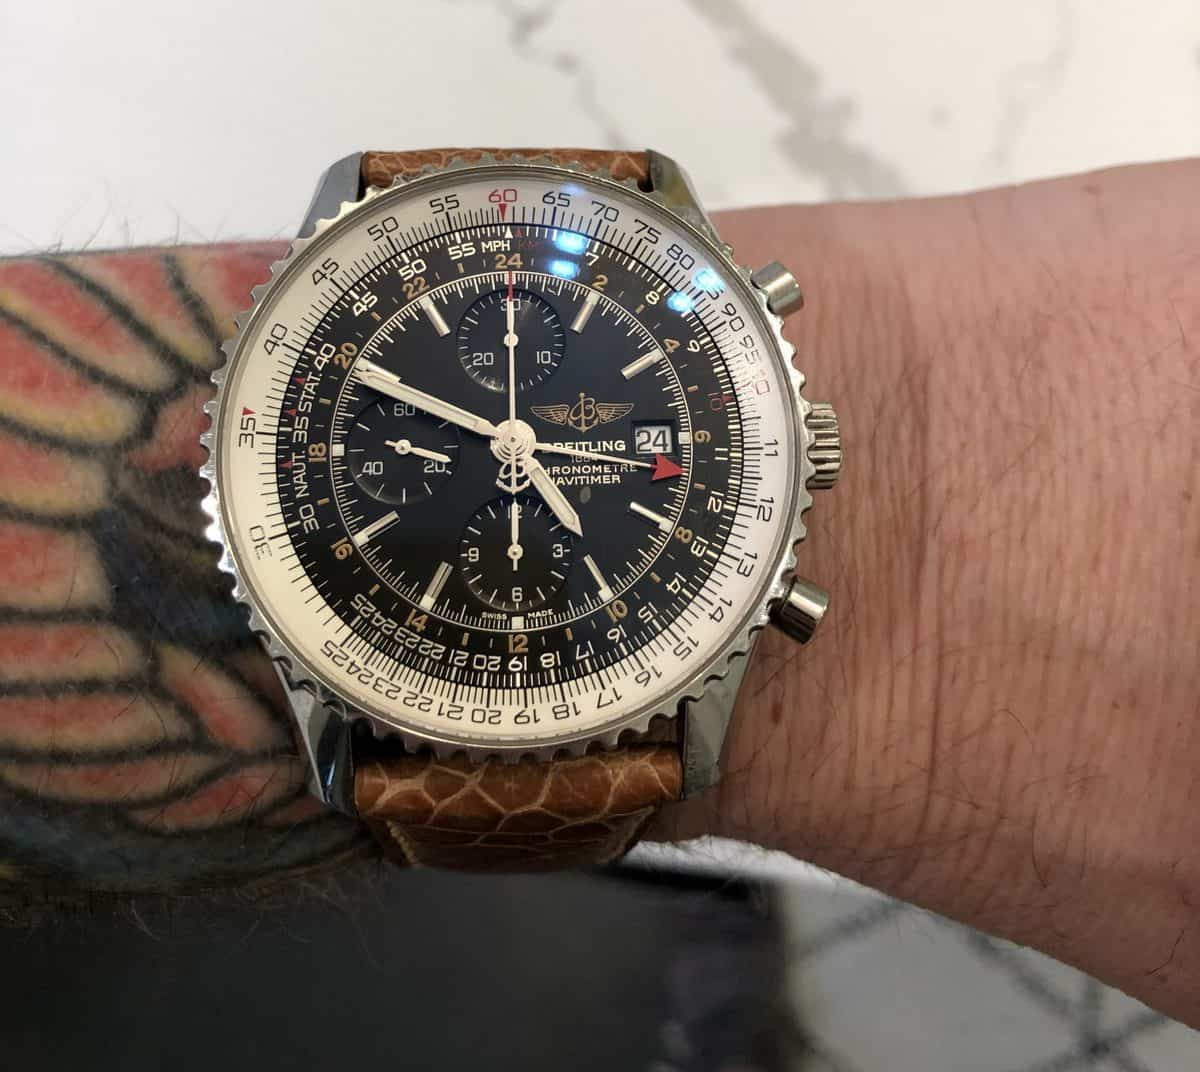 My Brietling Navitimer World, 2015 (Sharing this in my Commission Hero review)